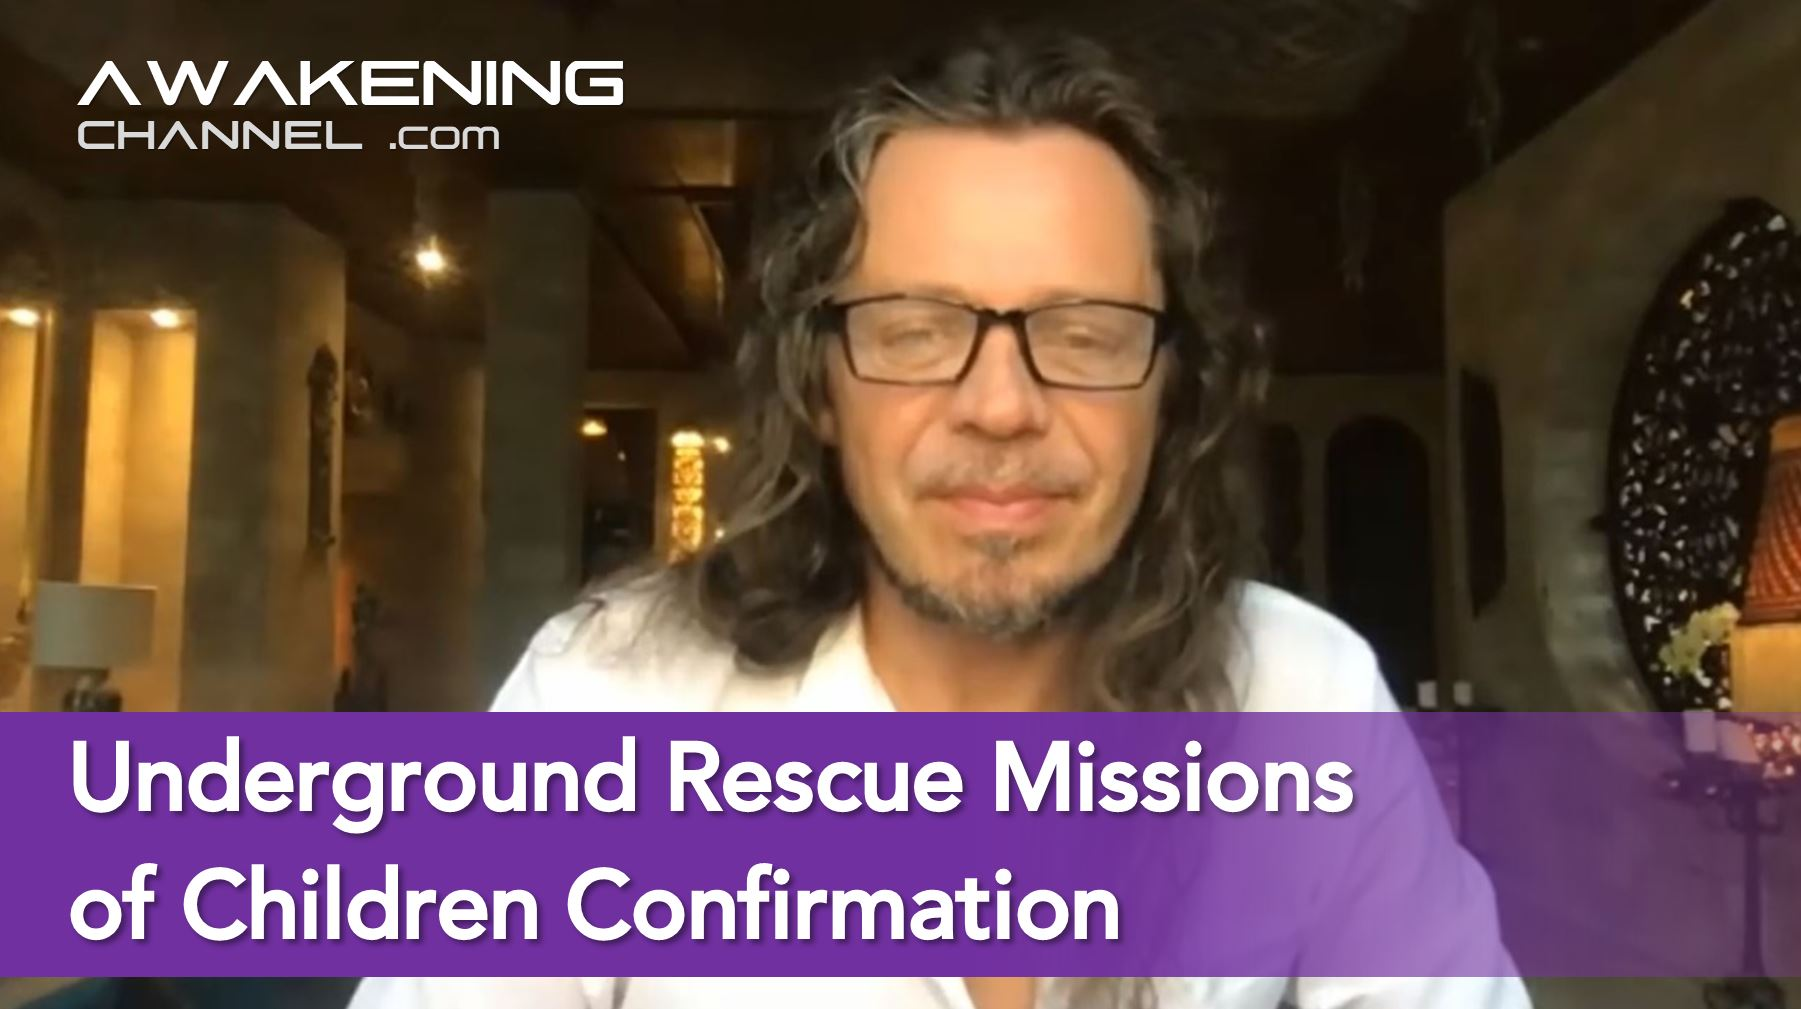 Underground RESCUE MISSIONS OF CHILDREN & CABAL ARRESTS latest intel by Sacha Stone.